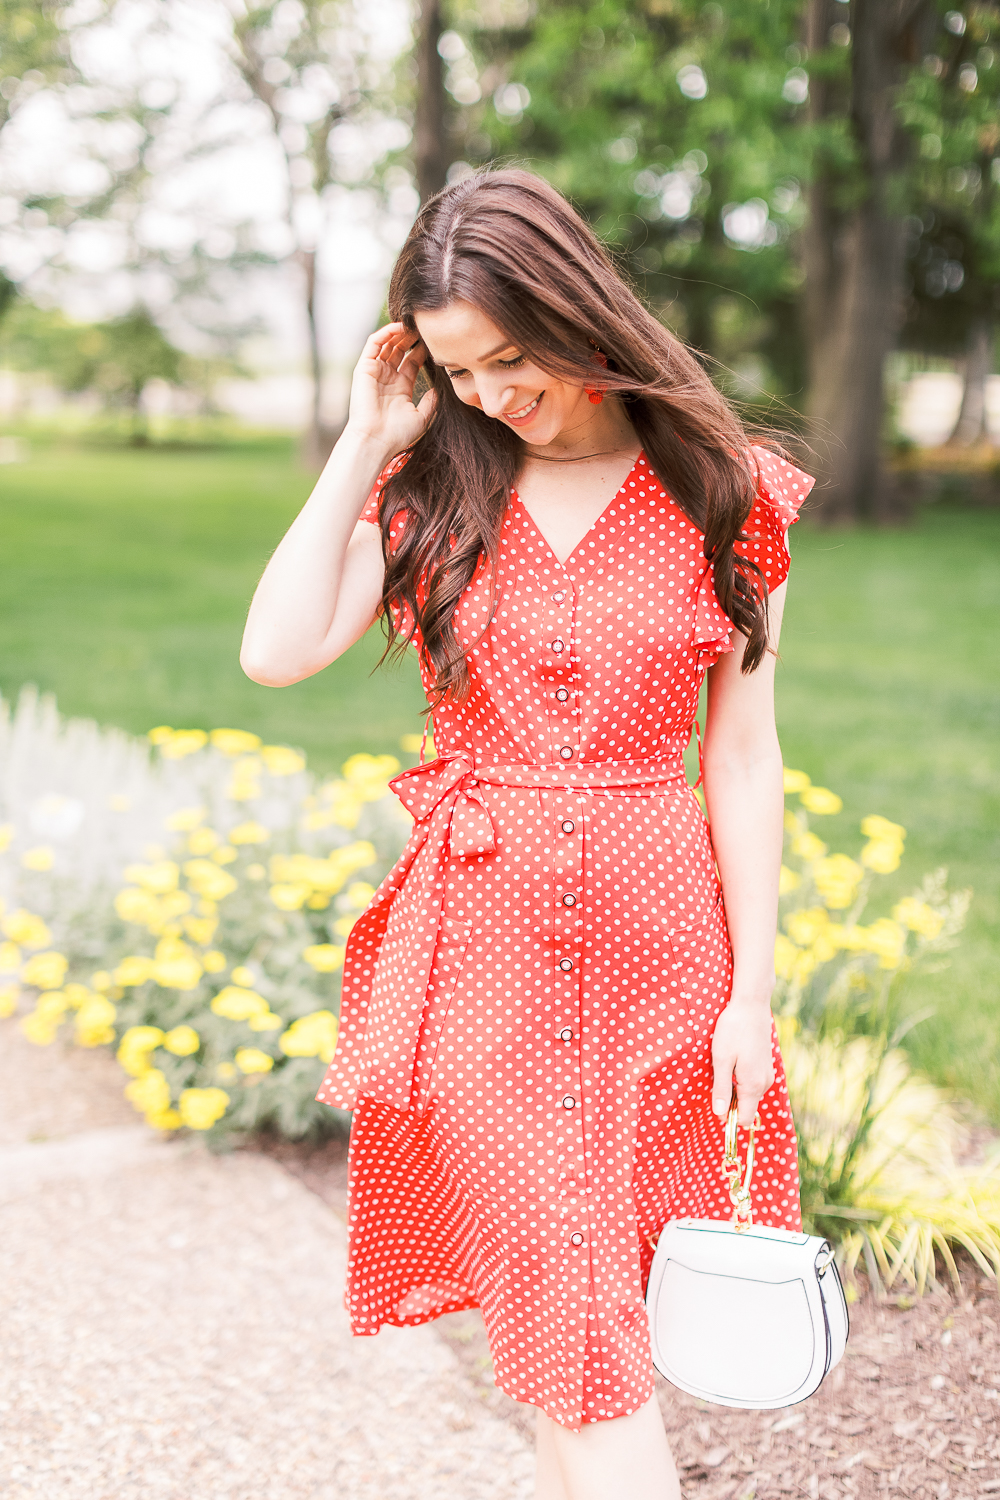 4th of July Outfit Idea: Red Polka Dot Midi Dress Outfit by popular affordable style blogger Stephanie Ziajka on Diary of a Debutante, MITILLY Polka Dot Sleeveless V Neck Swing Midi Dress with Pockets, white Chloe Nile dupe bag, A New Day Women's Adelina Espadrilles Slide Sandals